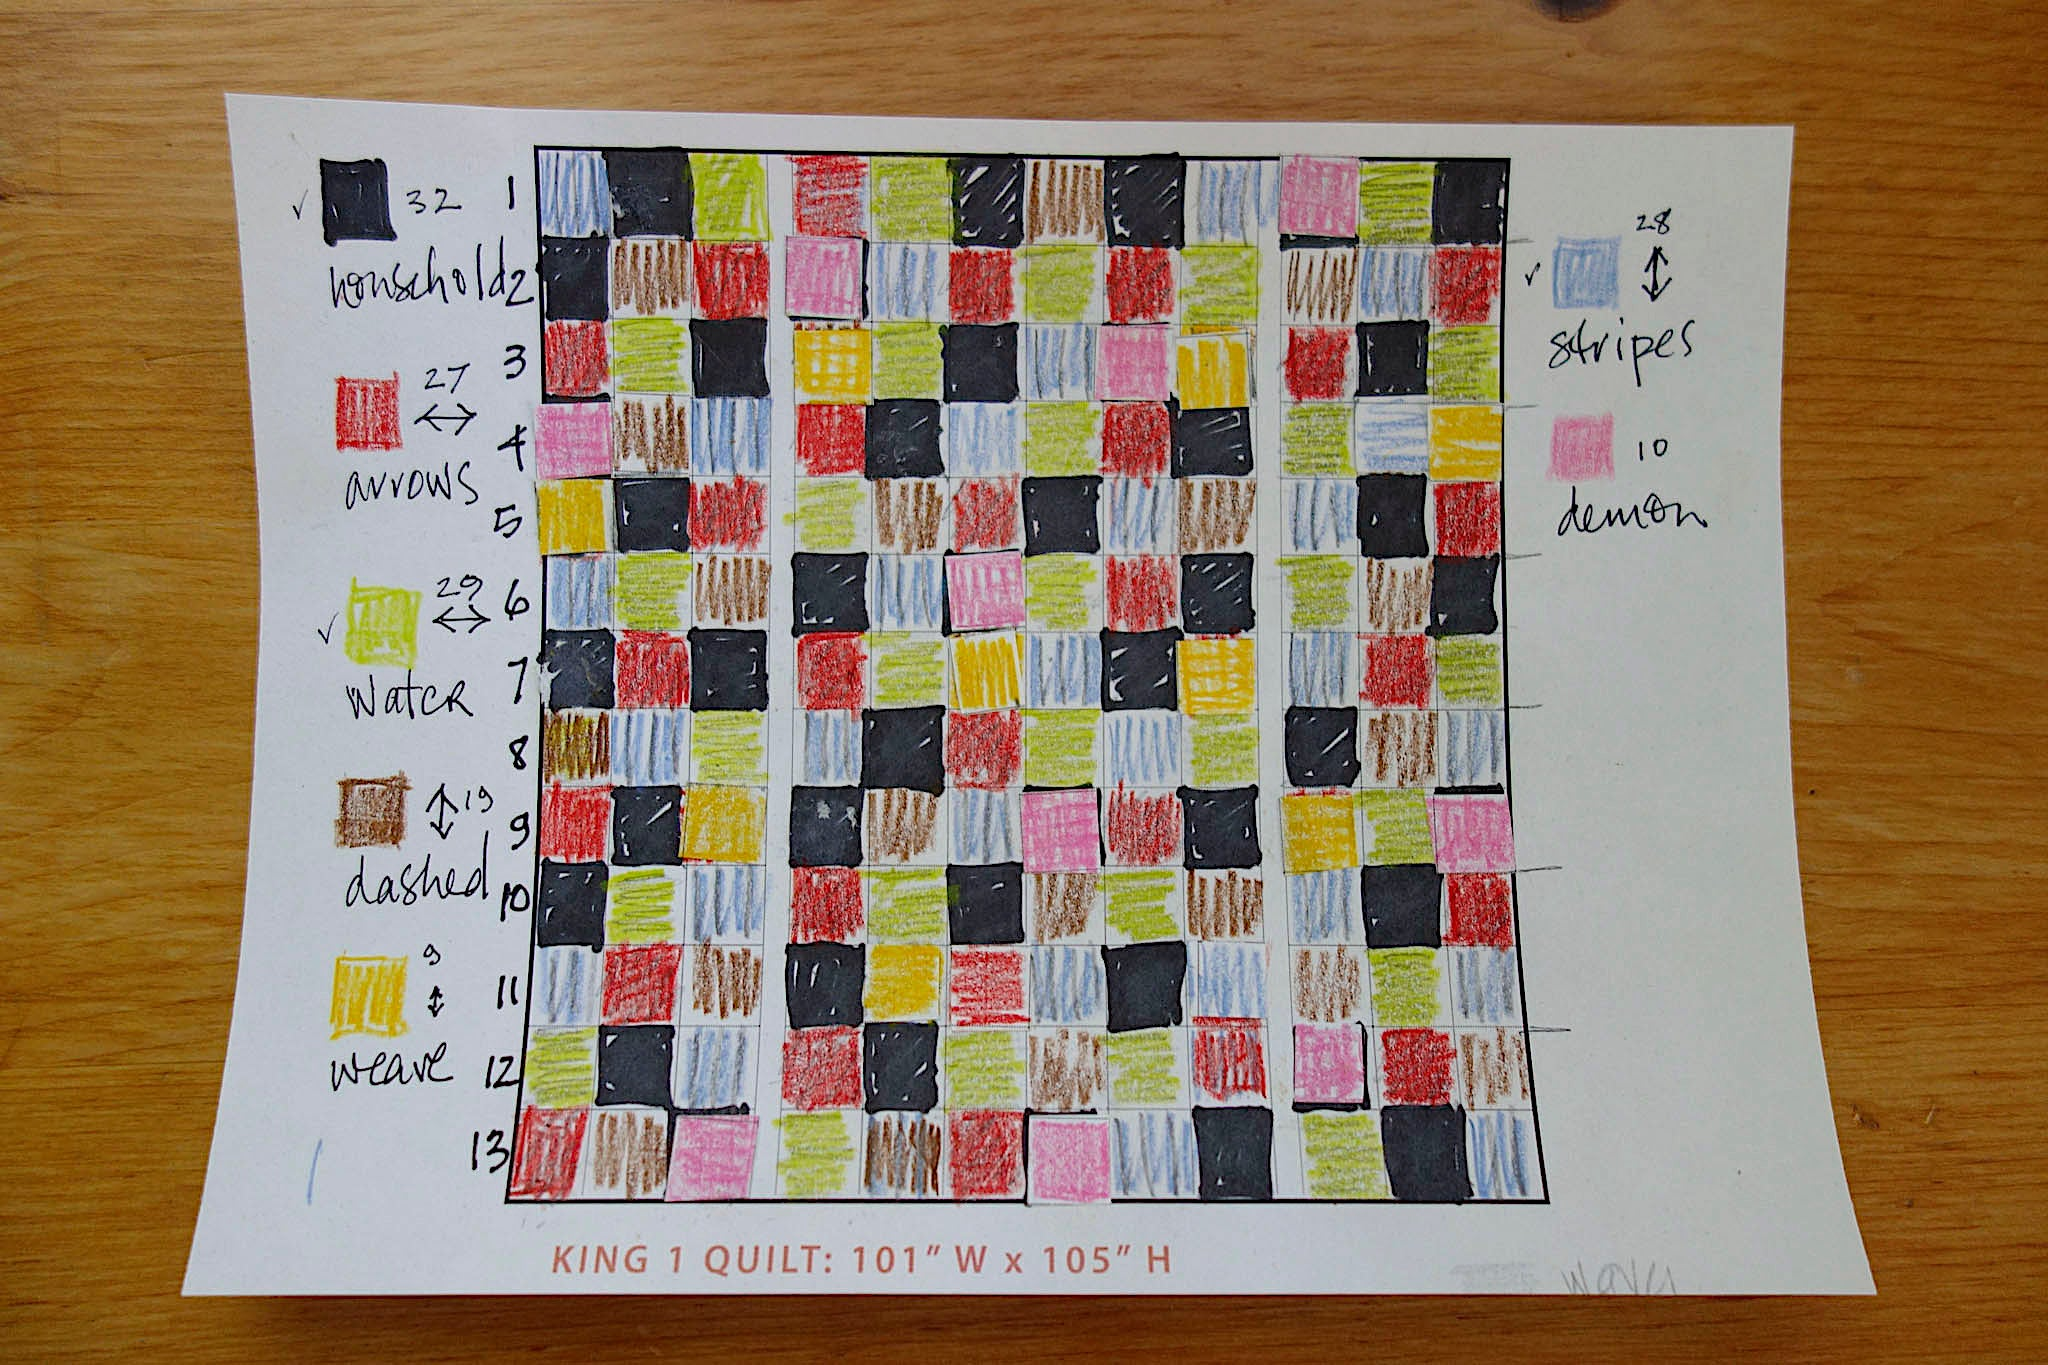 Plan for Indiglow, a king-sized quilt made by Patricia Belyea